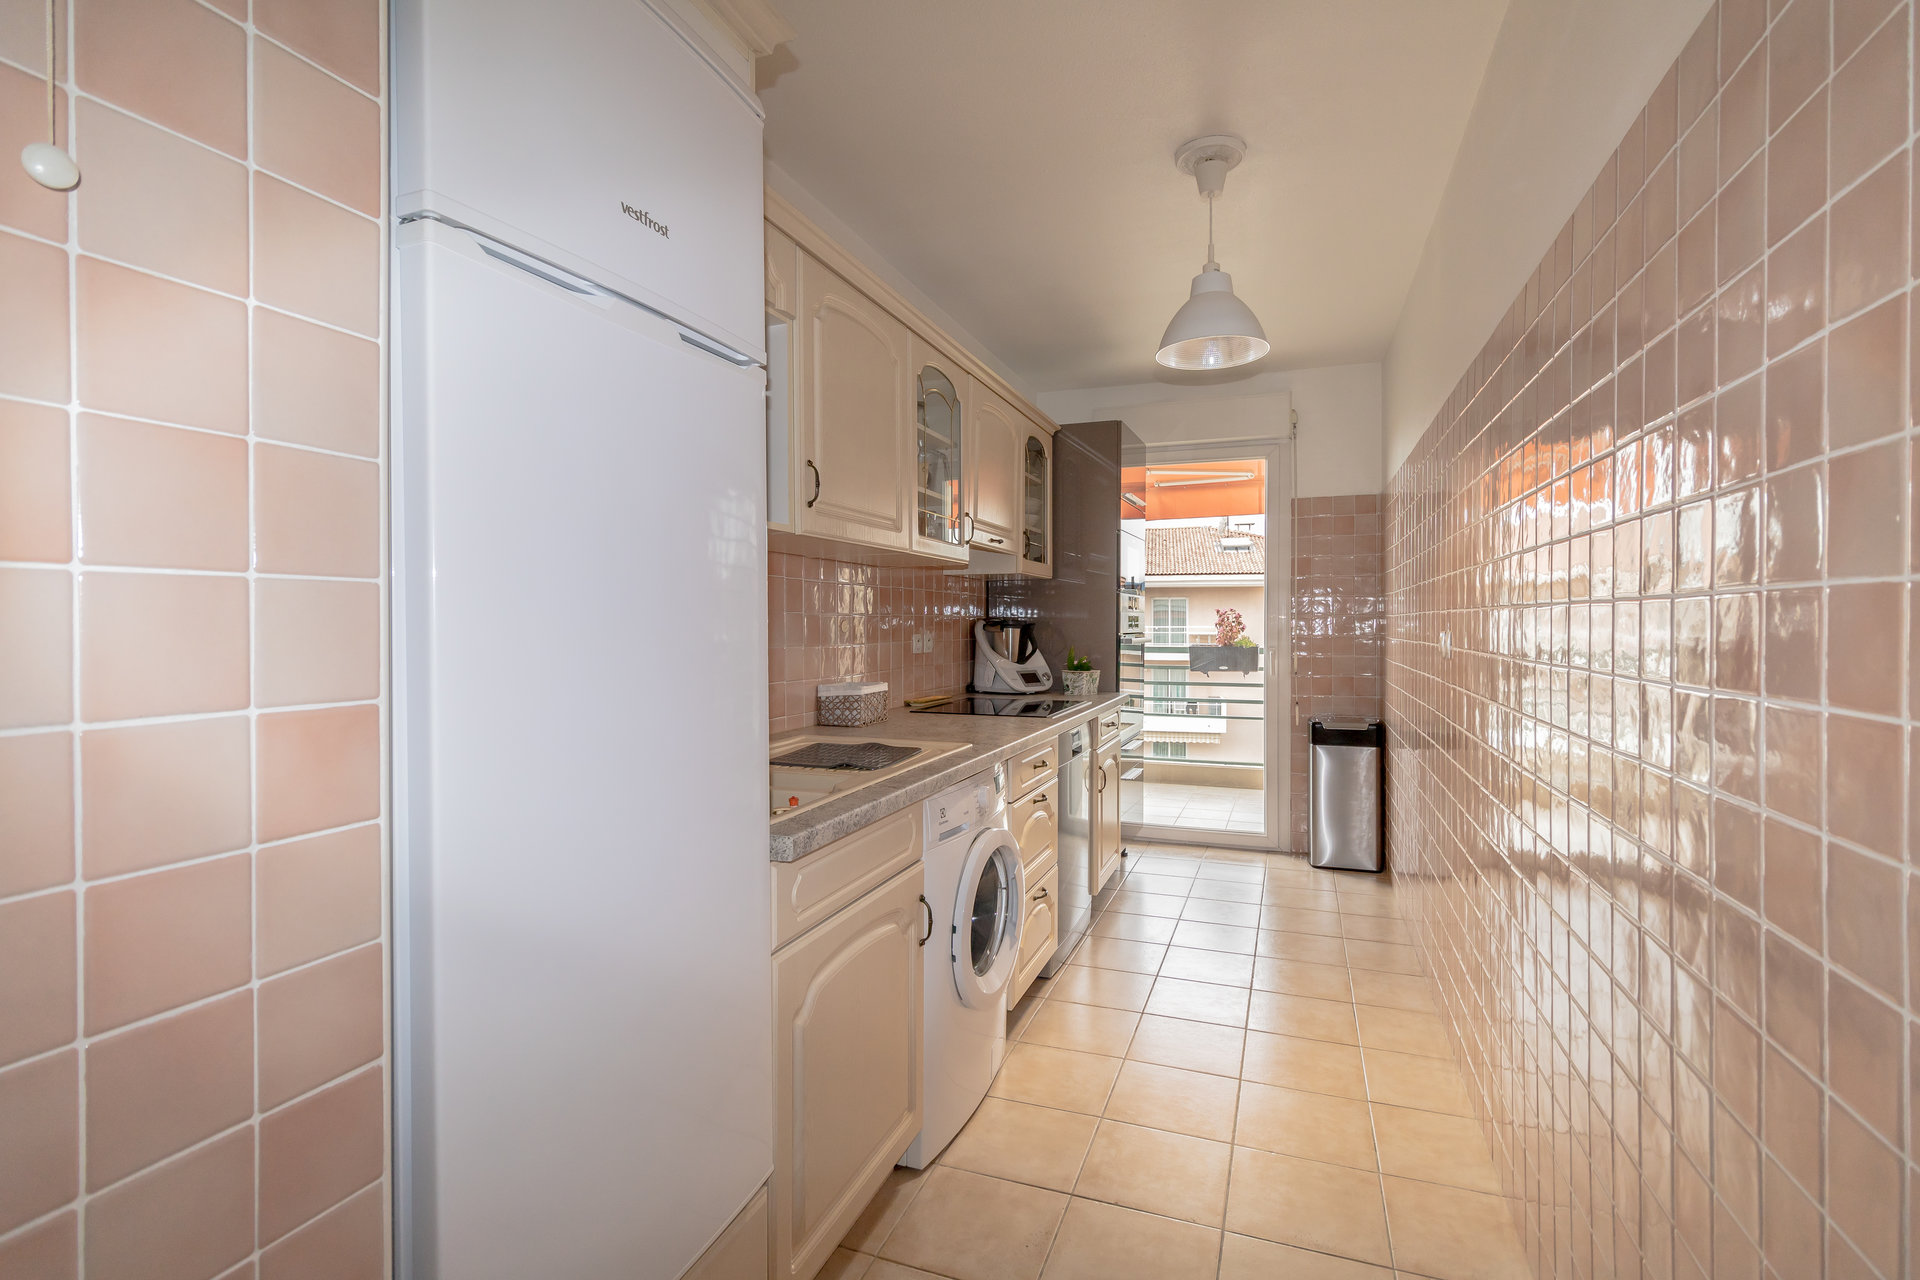 Saint-Laurent-du-Var, 2-bedroom flat with terrace seaview & garage